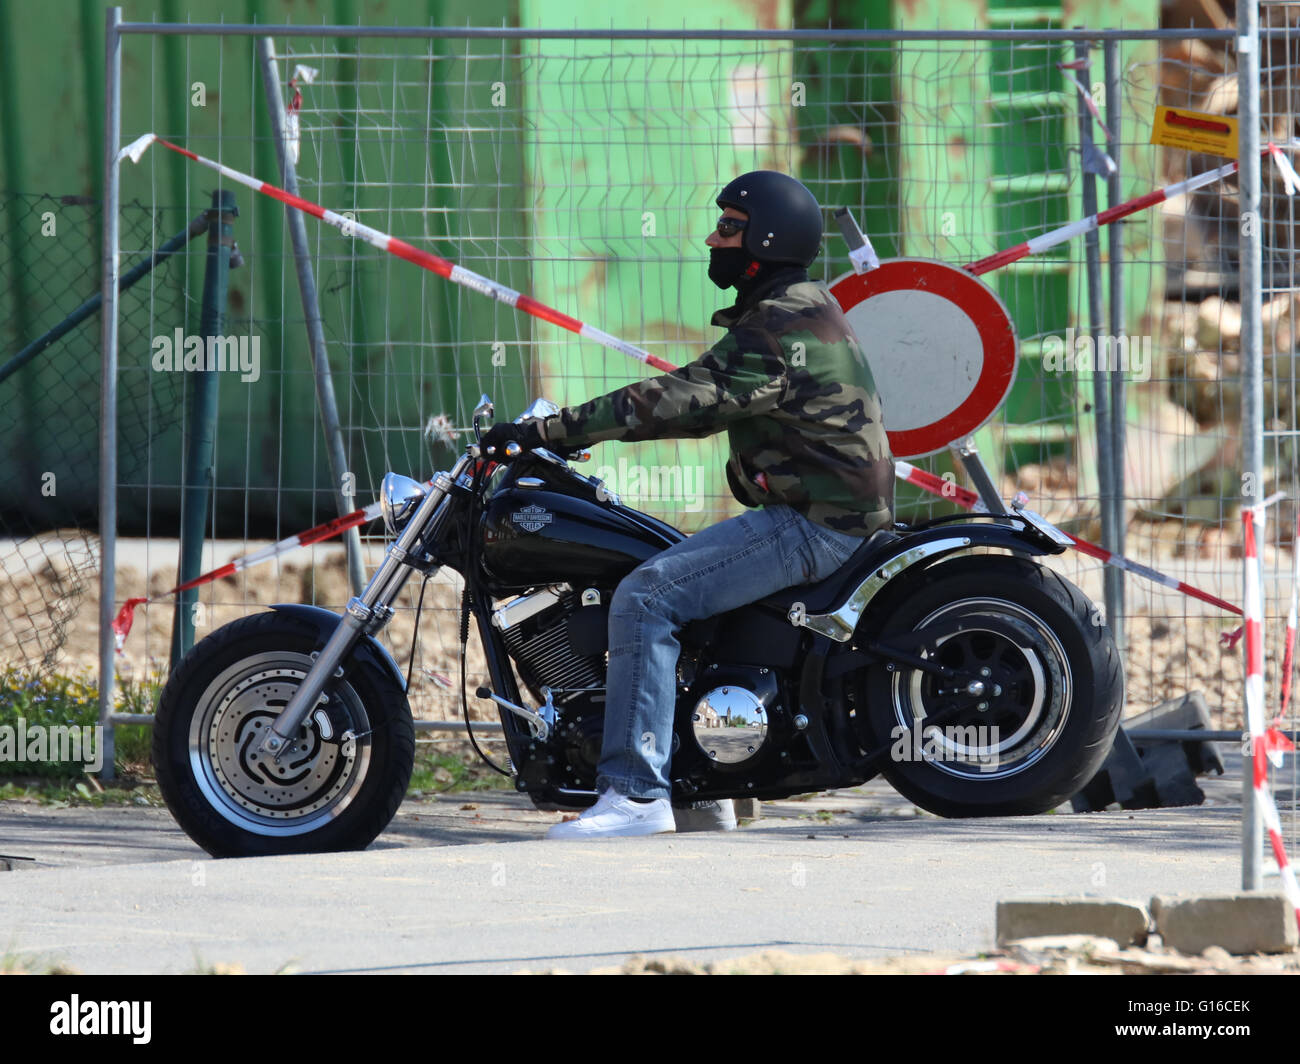 Harley Davidson with reflection of Pesch, Germany, on chrome gearbox, crop of G16CEC - Stock Image